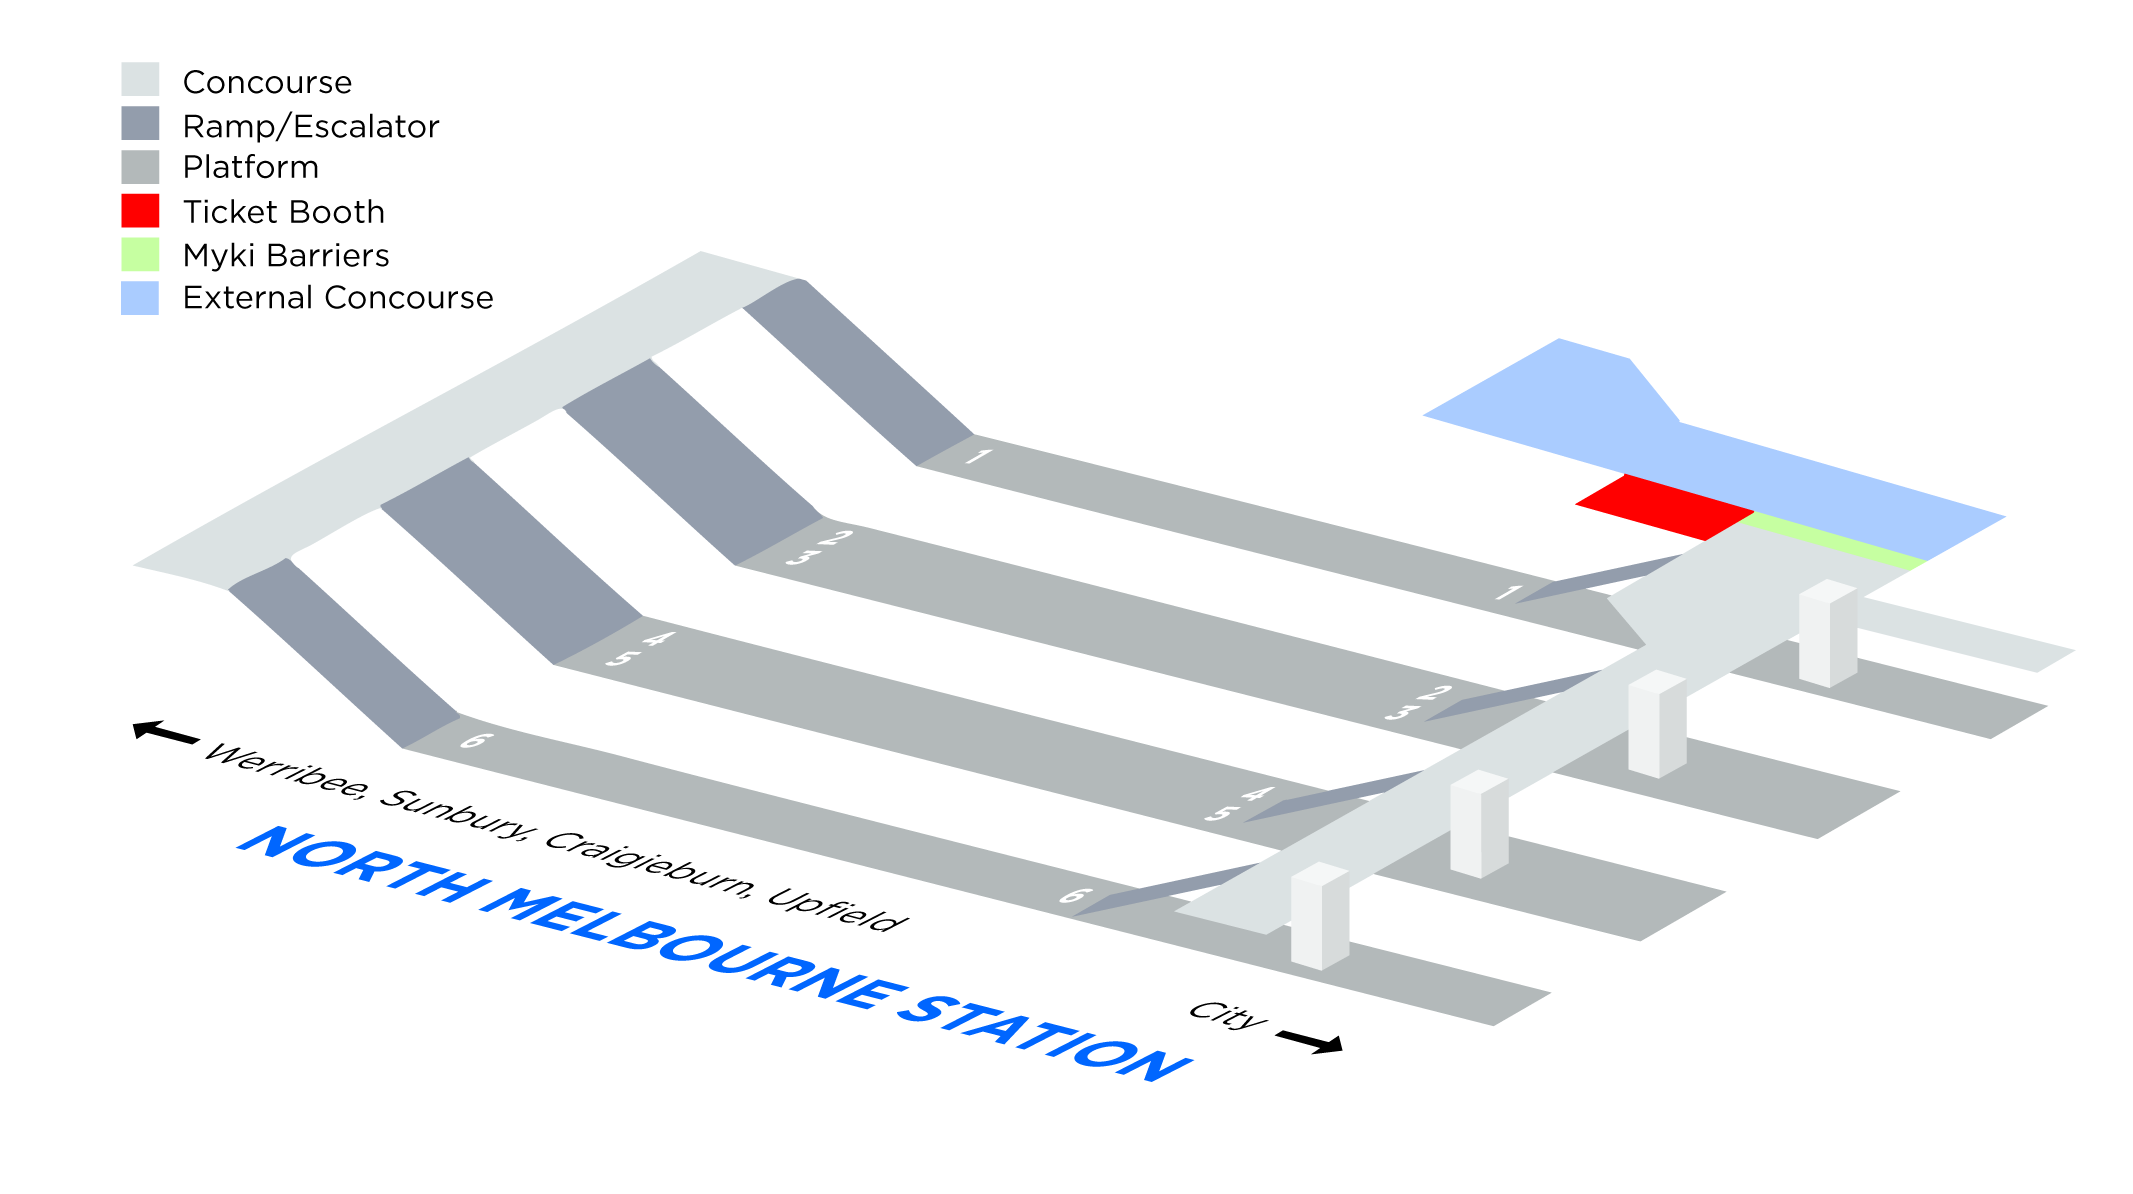 North Melbourne Railway Station Escalator Schematic From Wikipedia